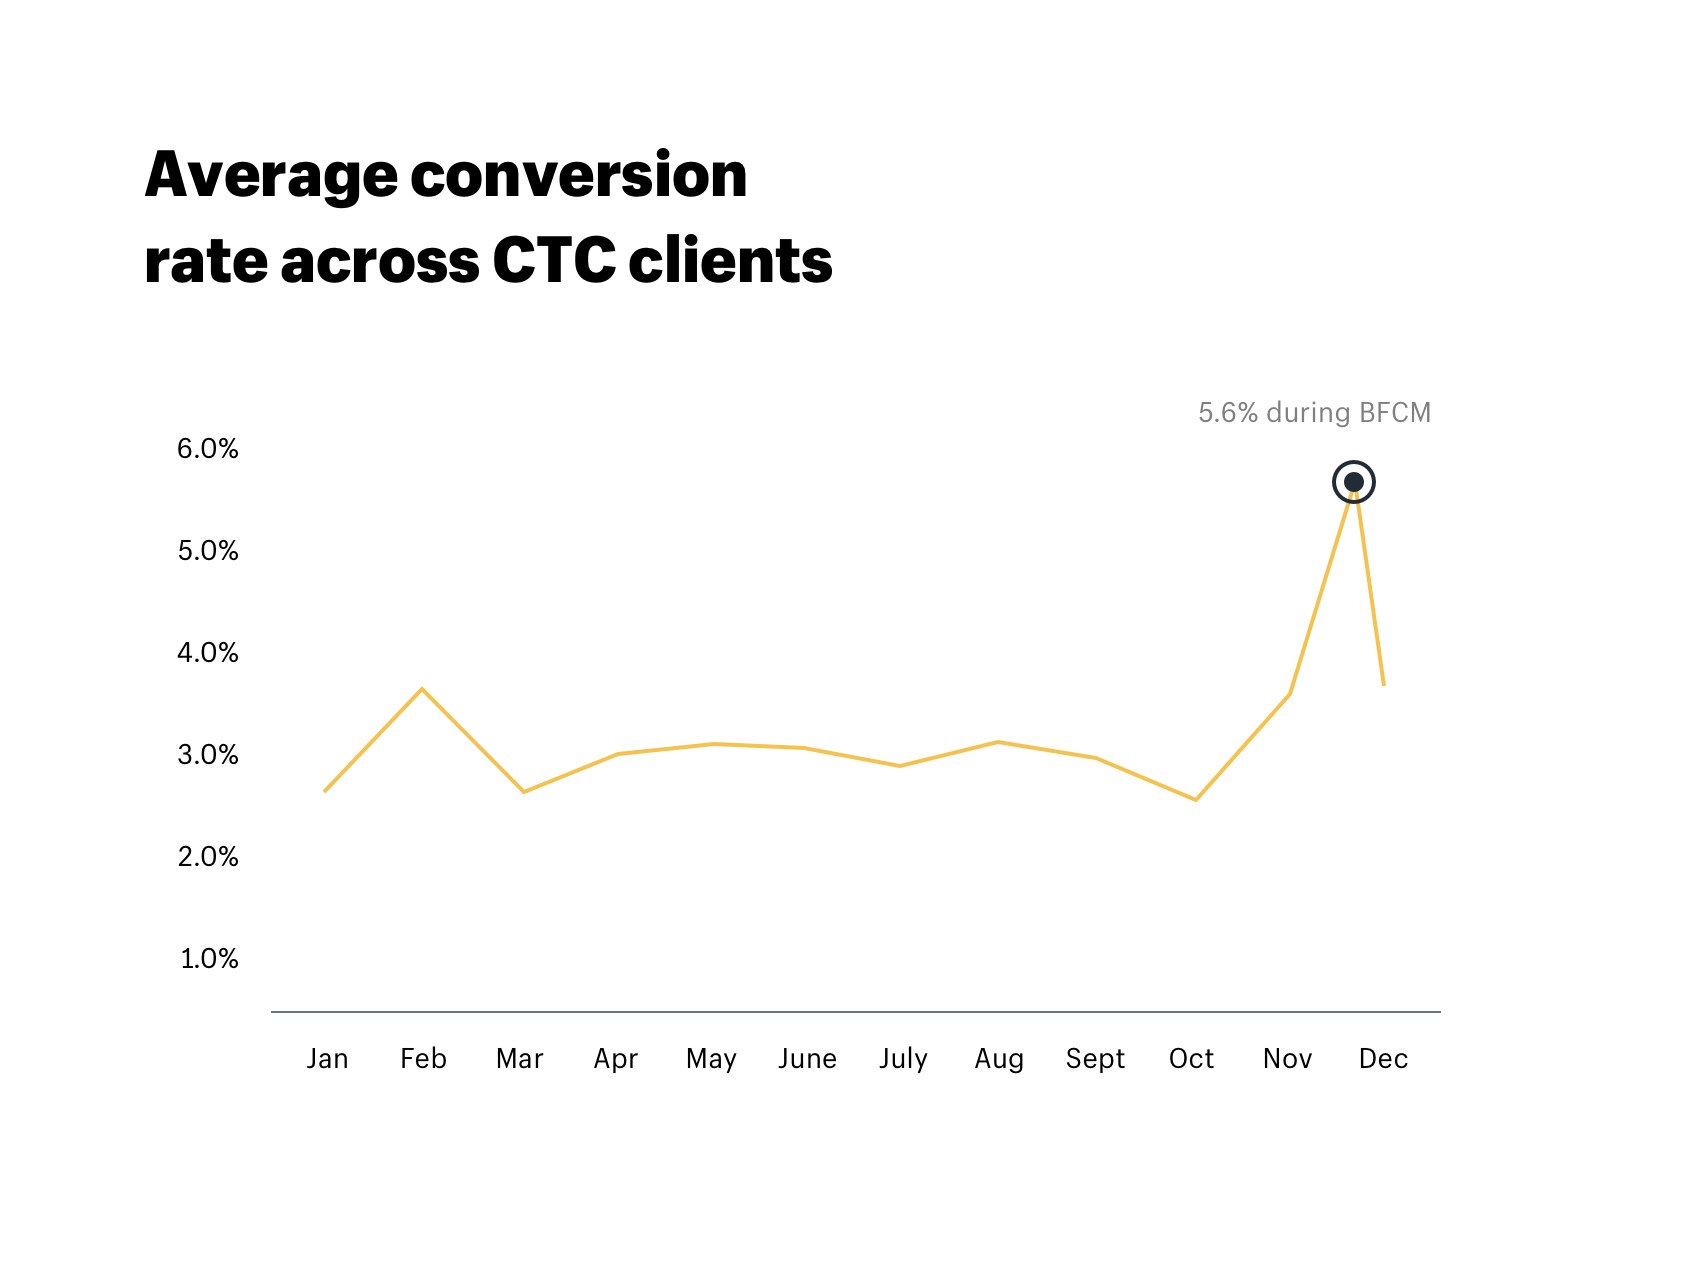 Average conversion rate across CTC clients during Black Friday and Q4